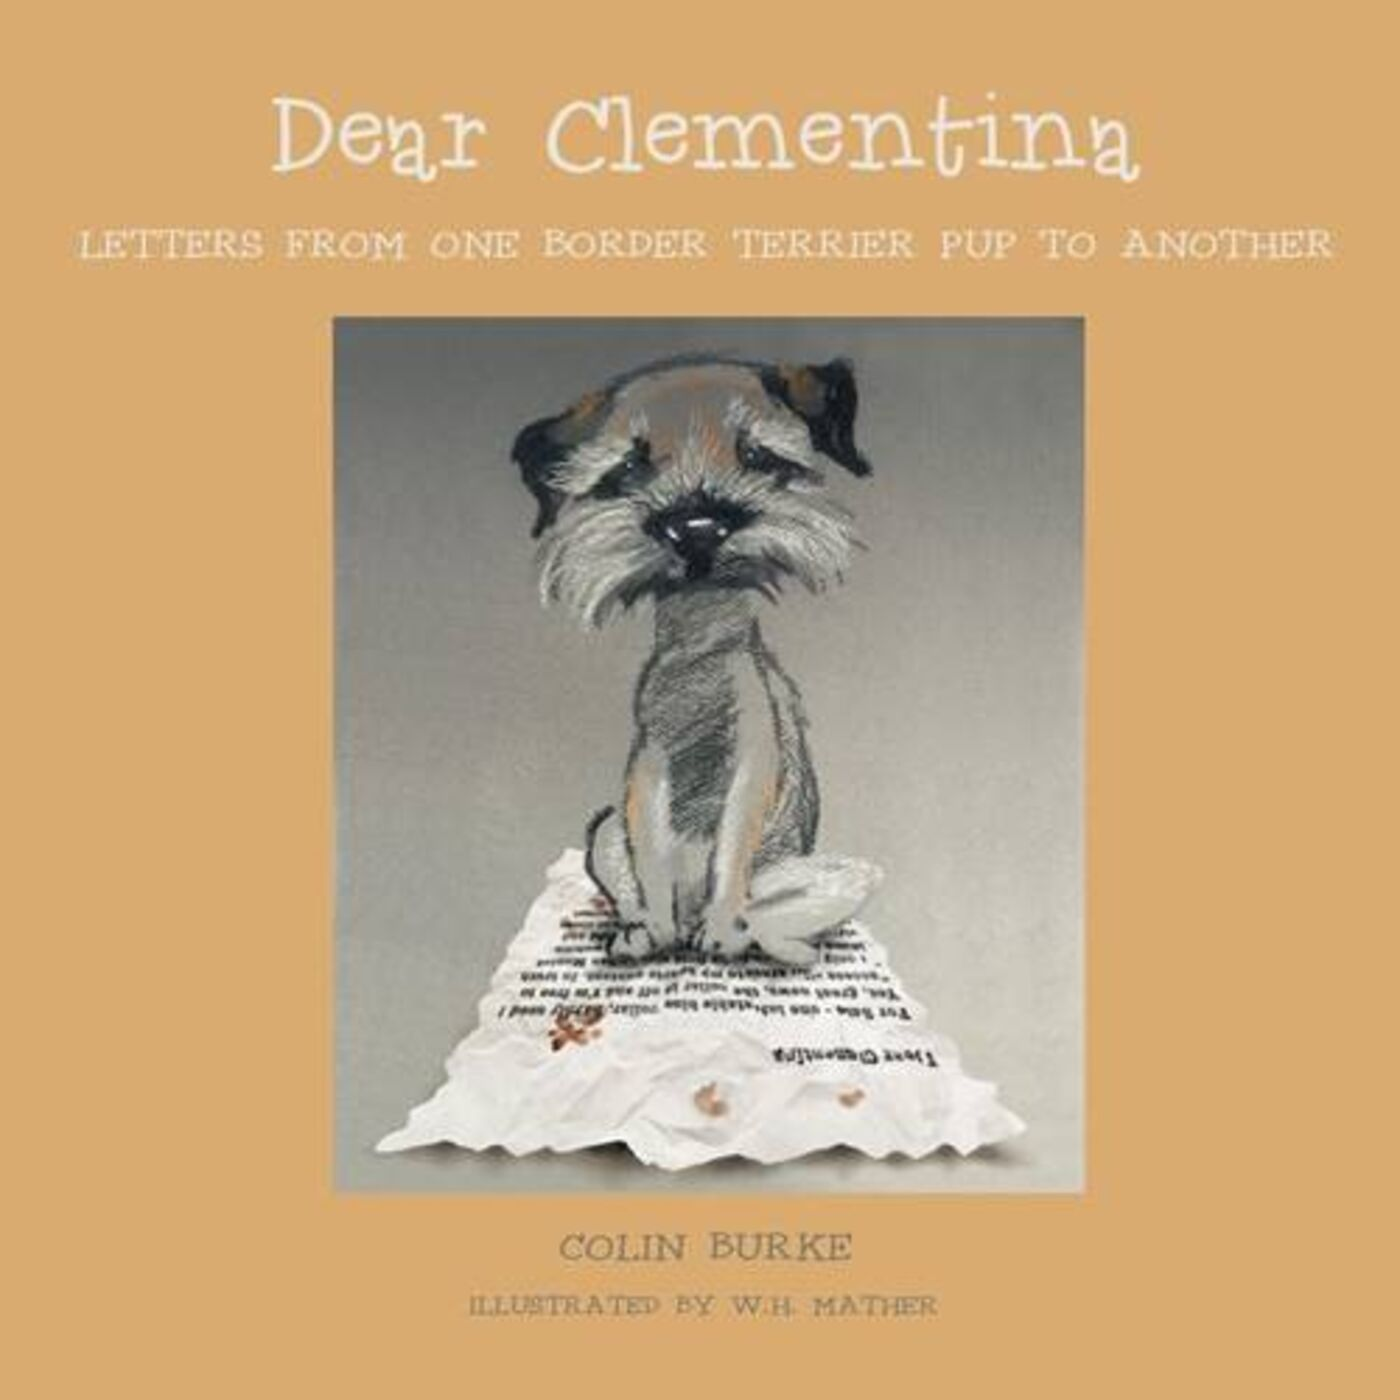 """Dear Clementina Chapter 1 - """"Sock it to me Stanley!"""""""